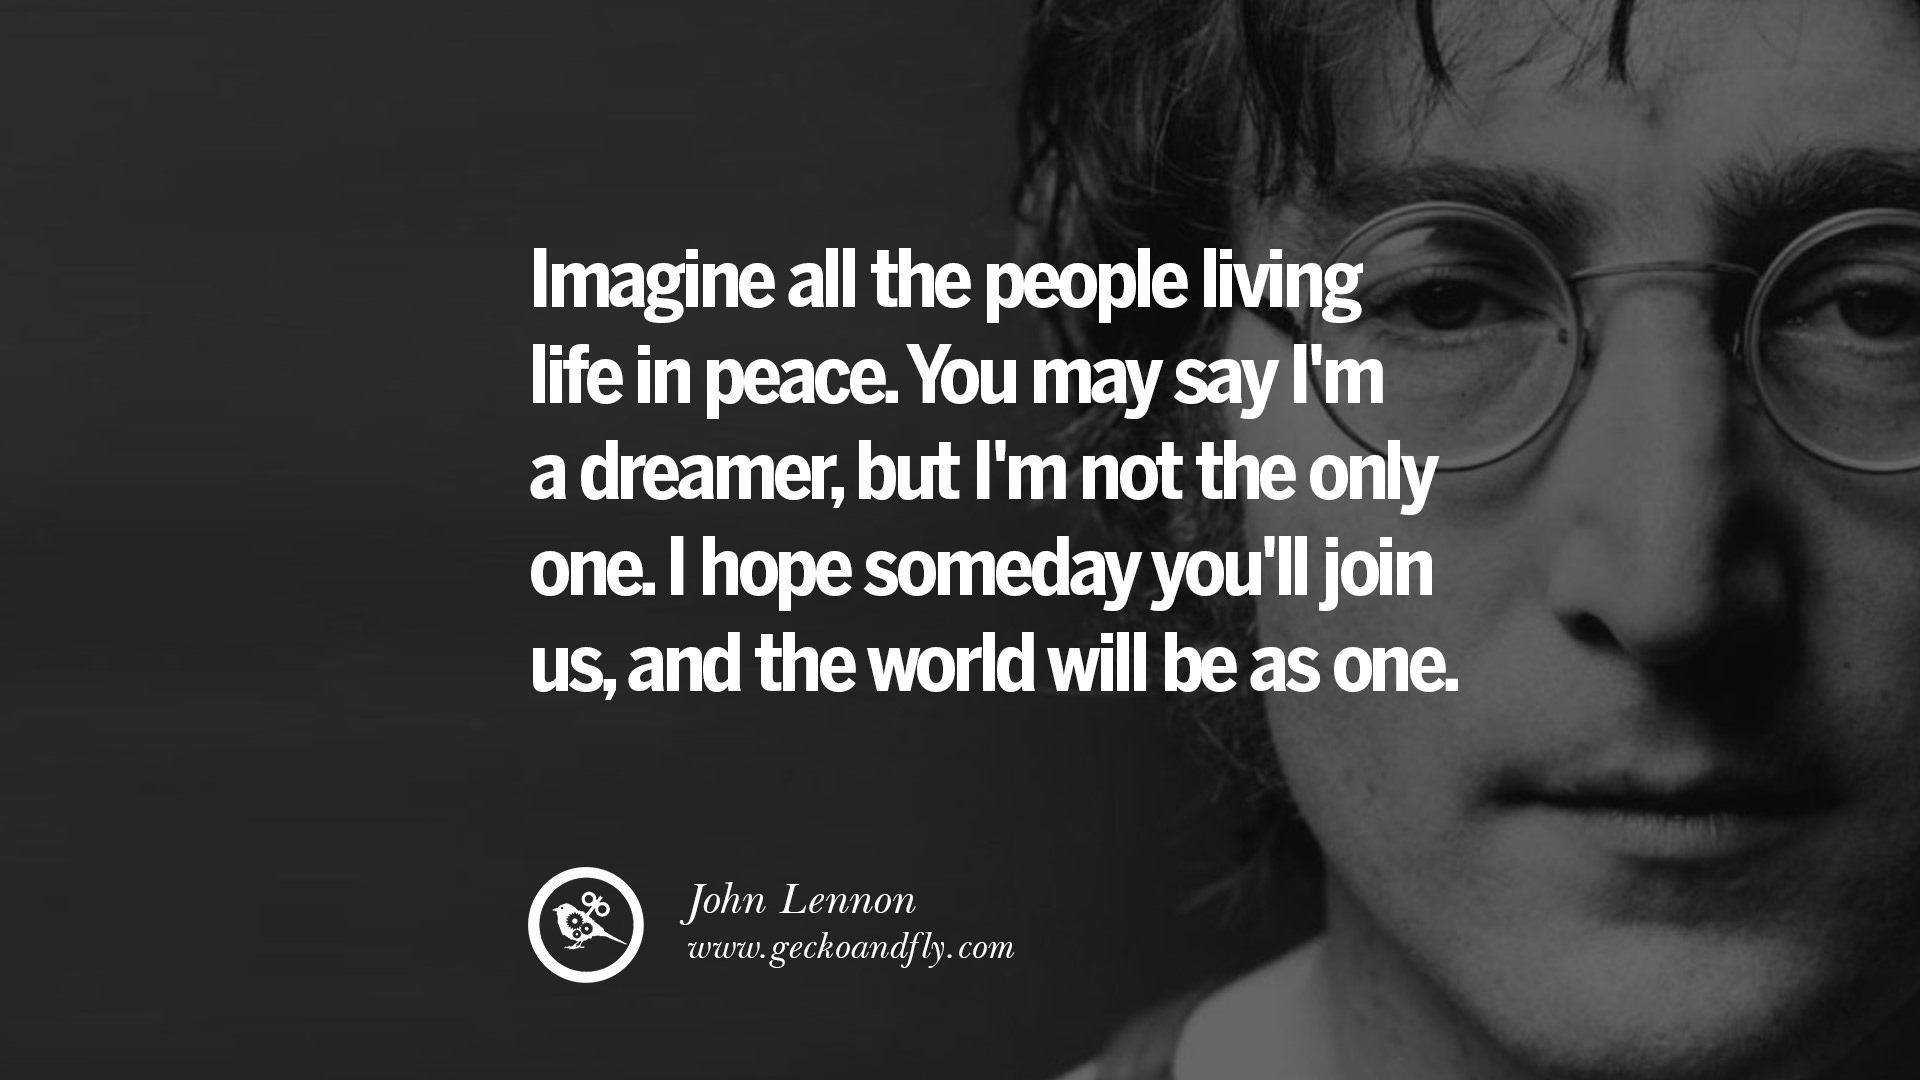 Death Quotes For Loved Ones 15 John Lennon Quotes On Love Imagination Peace And Death